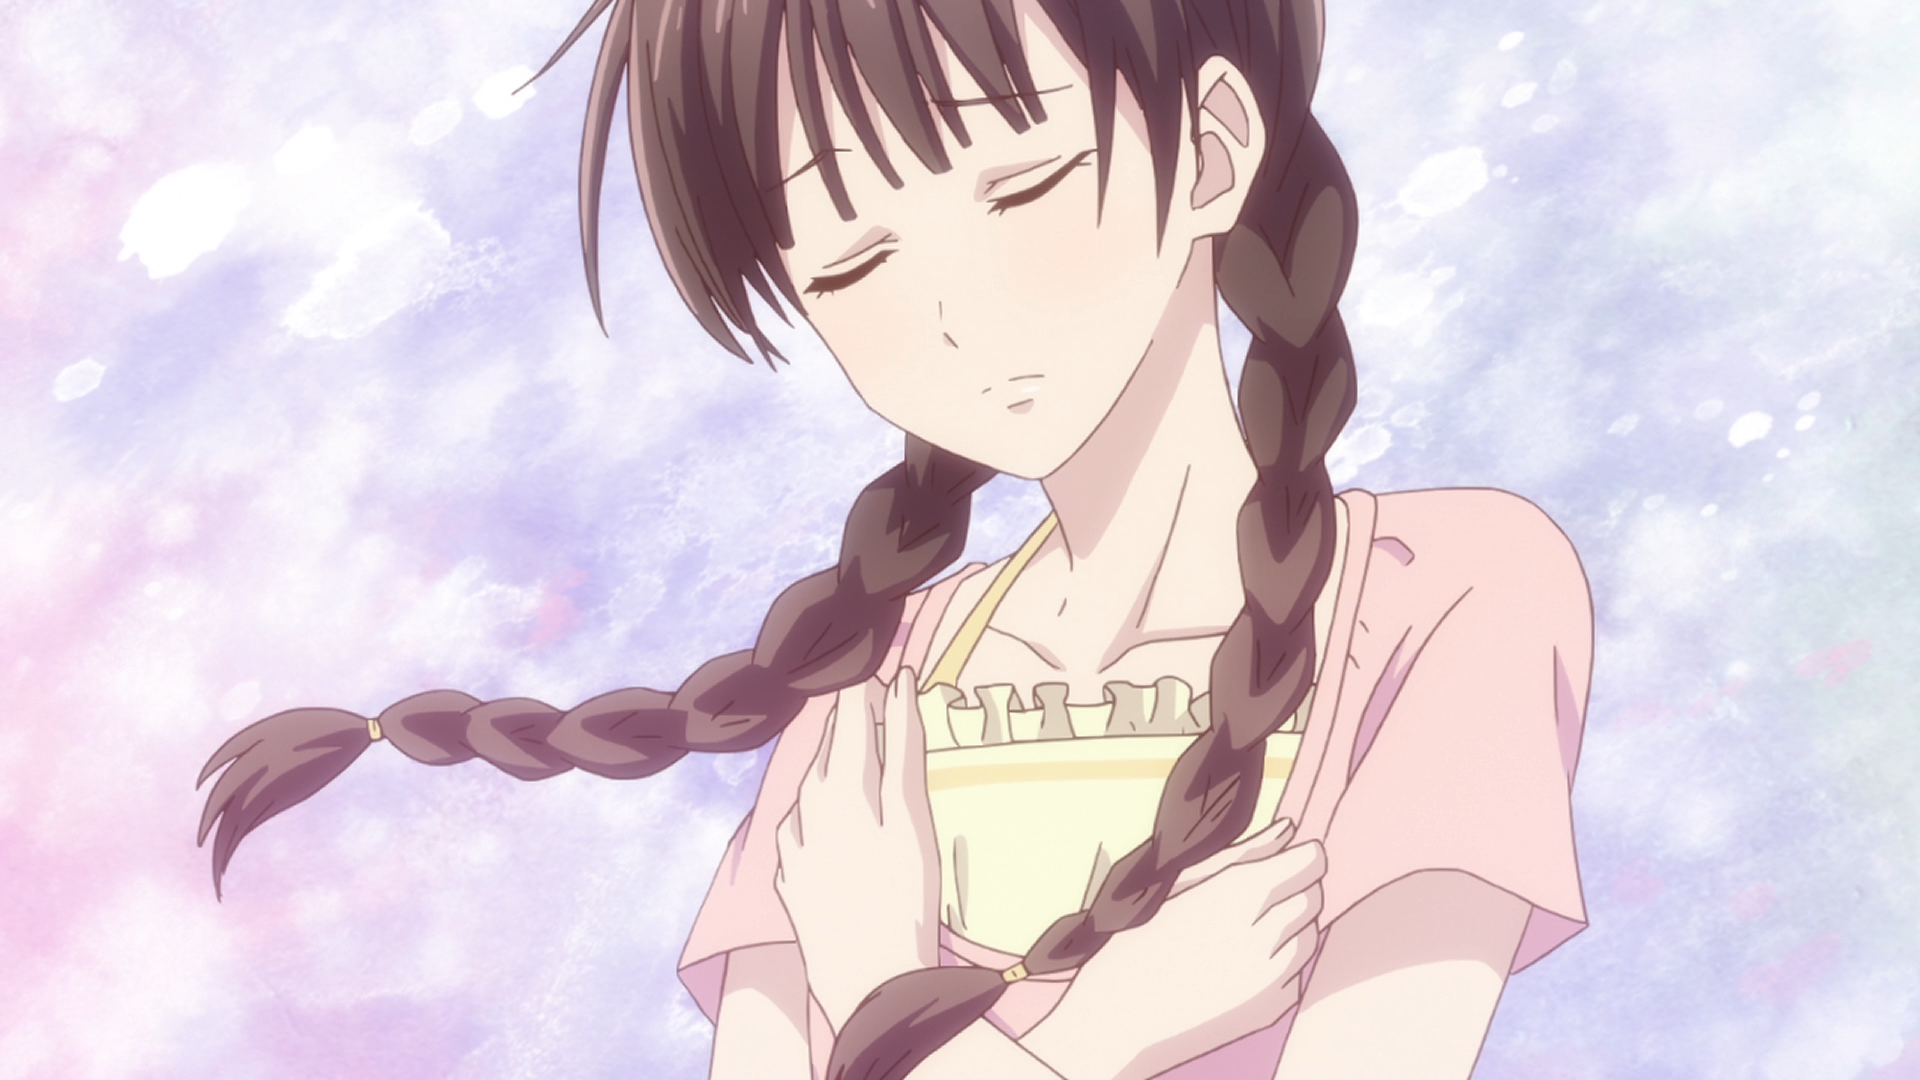 Fruits Basket - 02 (WEB-DL 1920x1080 x264 AAC Rus).mkv_snapshot_14.37.106.png